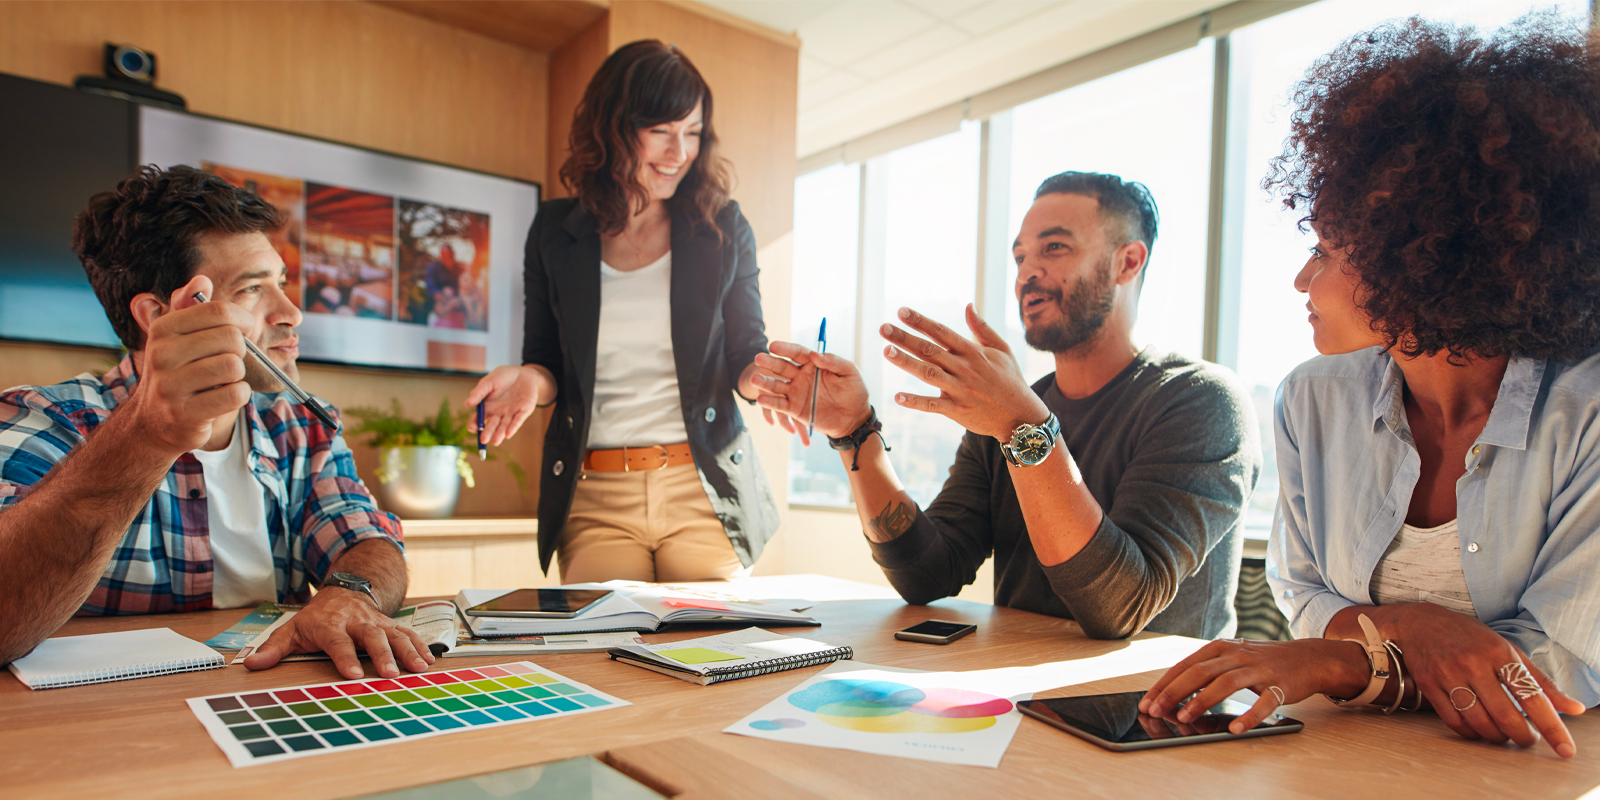 Collaboration with Design Agencies: 6 Ways to Manage Artwork Projects & Increase Productivity